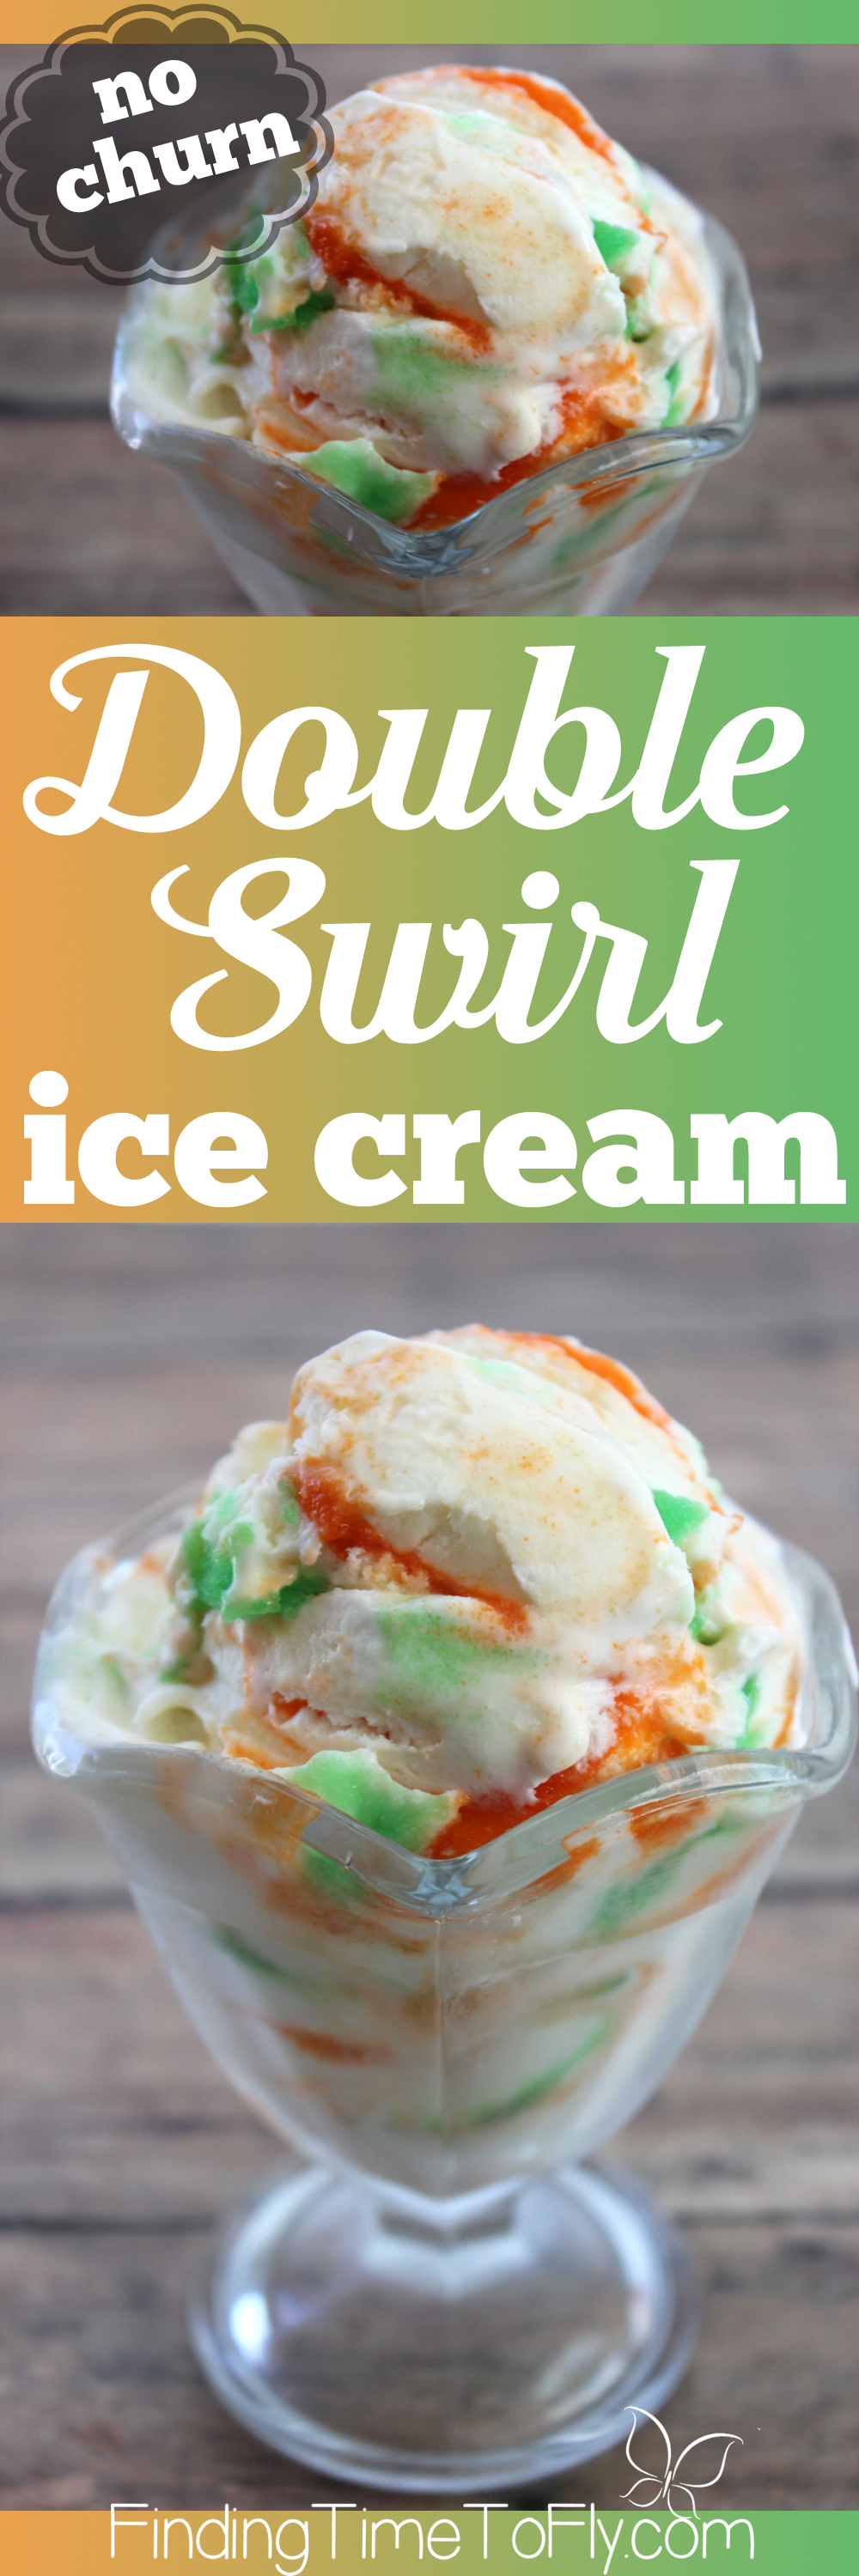 I love how you can change the colors and flavors with this easy homemade ice cream recipe. This no churn double swirl ice cream is going in my recipe collection for sure!